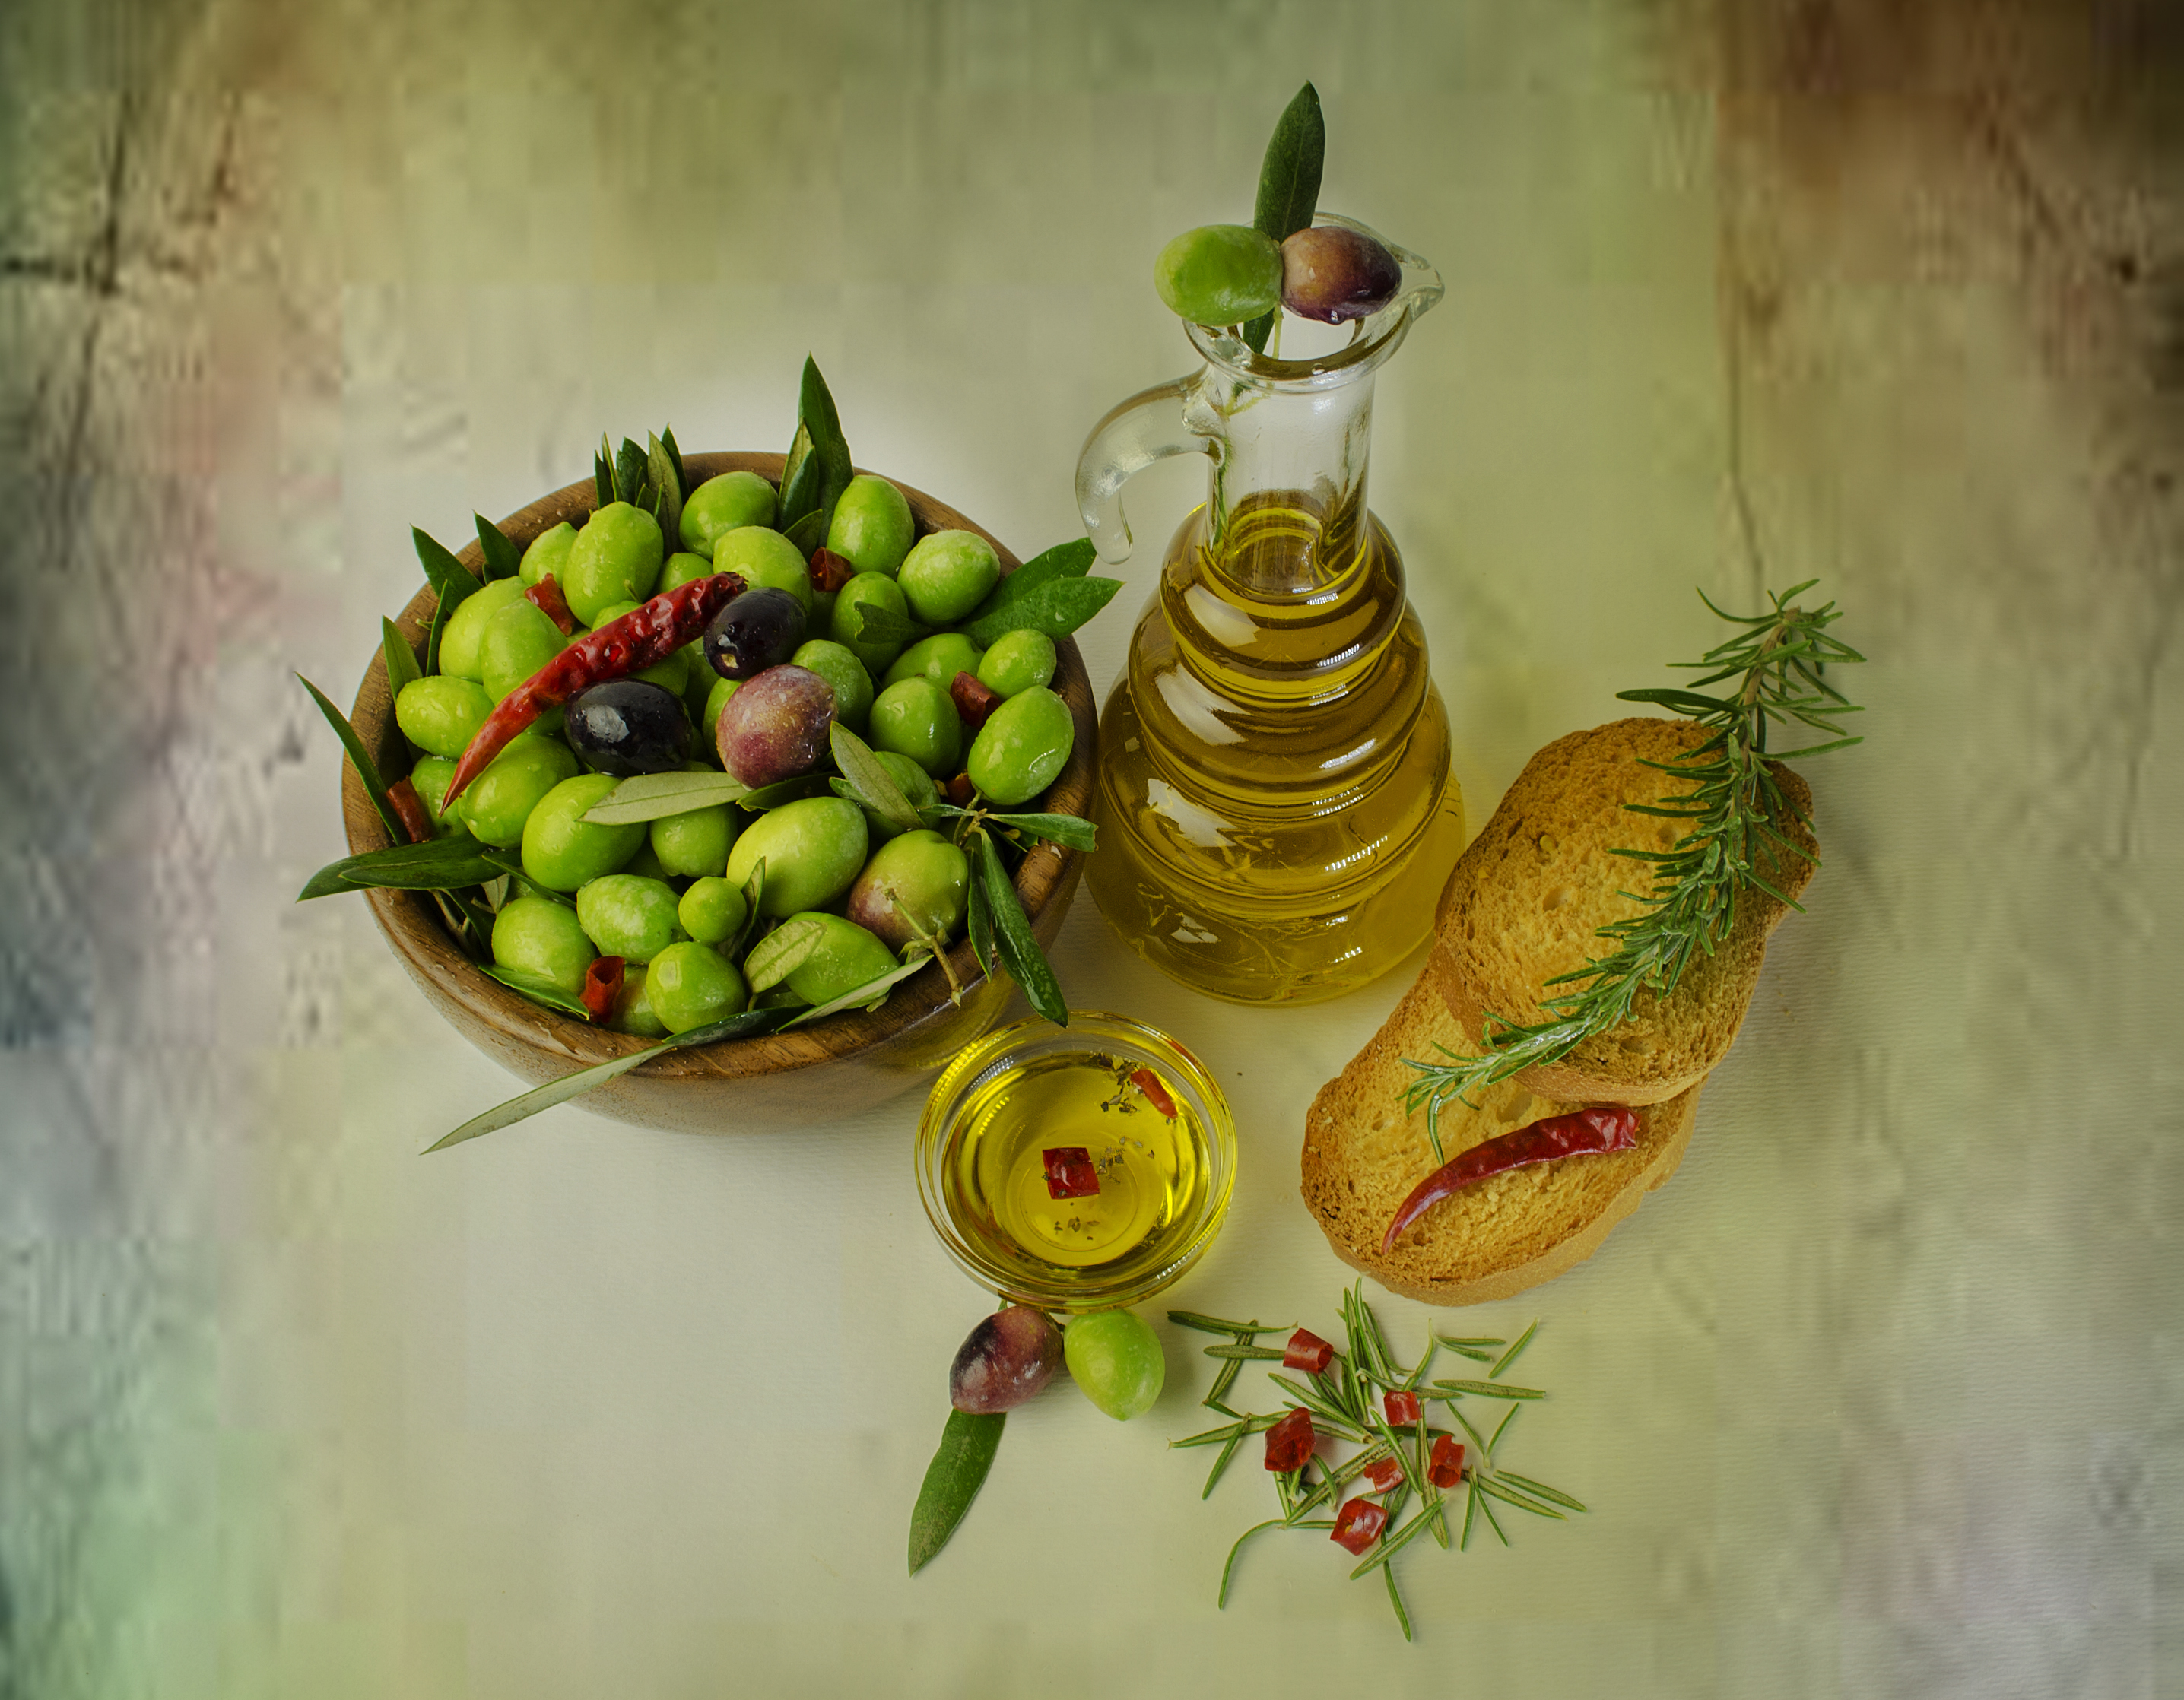 Mediterrane Küche Definition File Egyptian Olives Jpg Wikimedia Commons